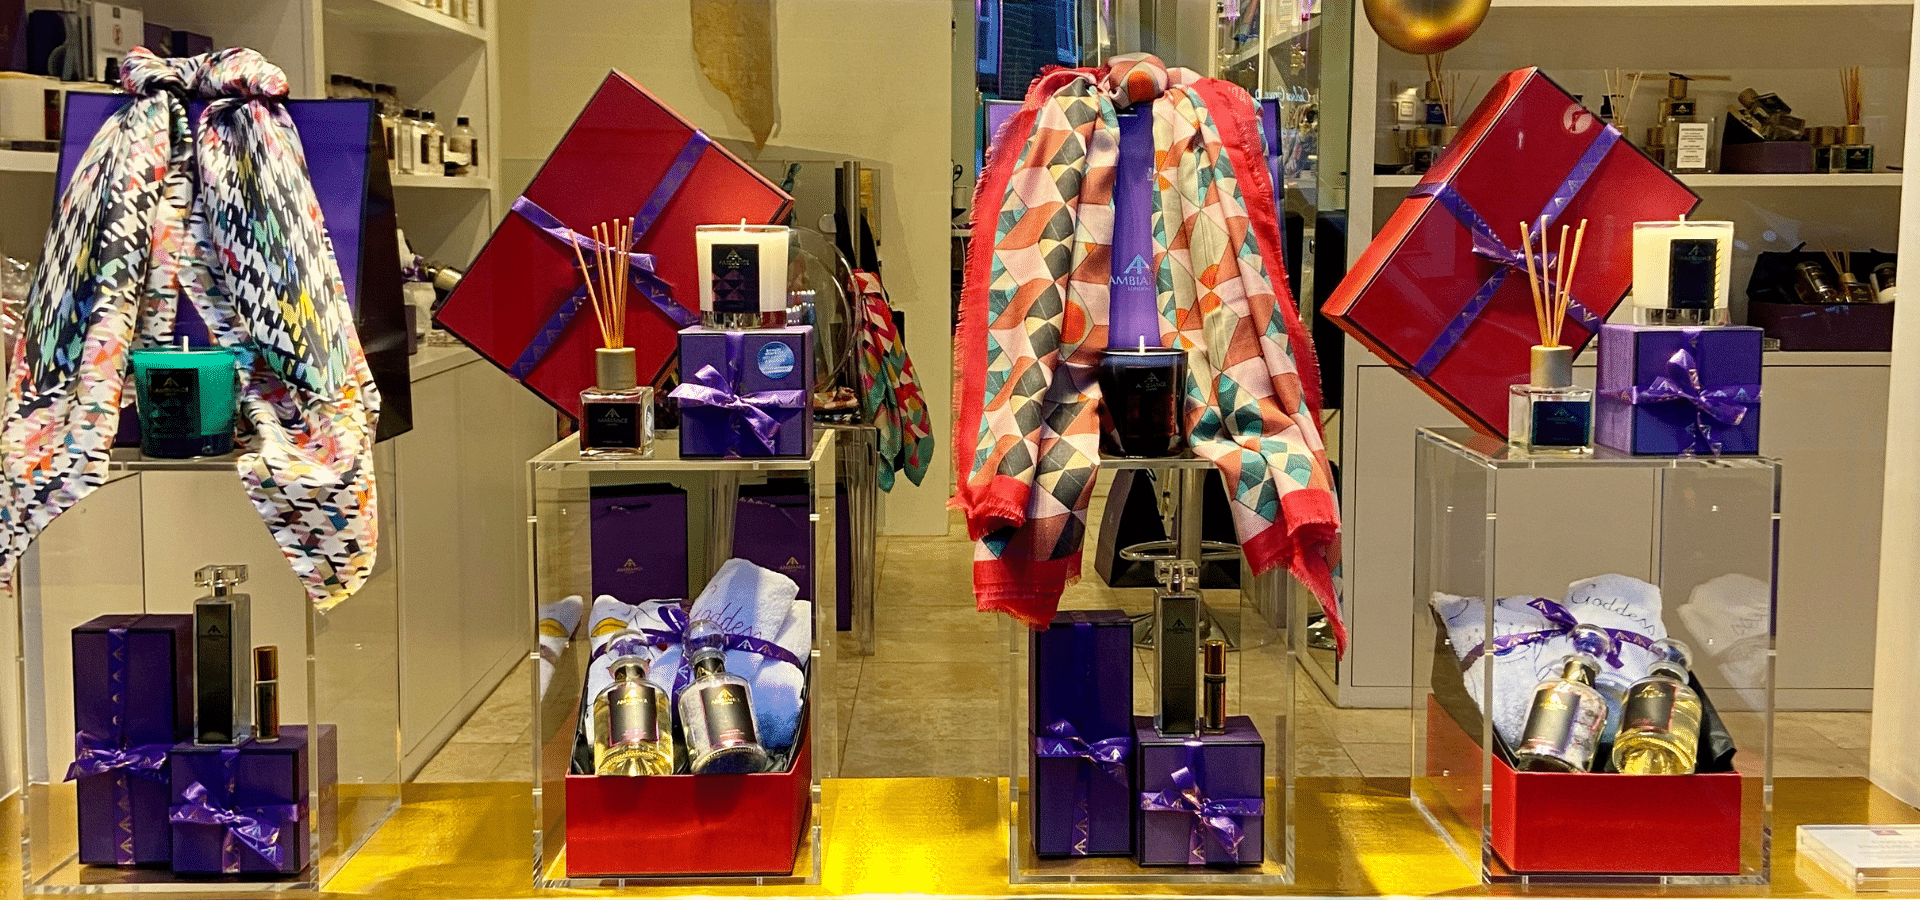 ancienne ambiance luxury boutique heart of Chelsea, London - holiday gifts - christmas gifts - christmas gift guide - festive window